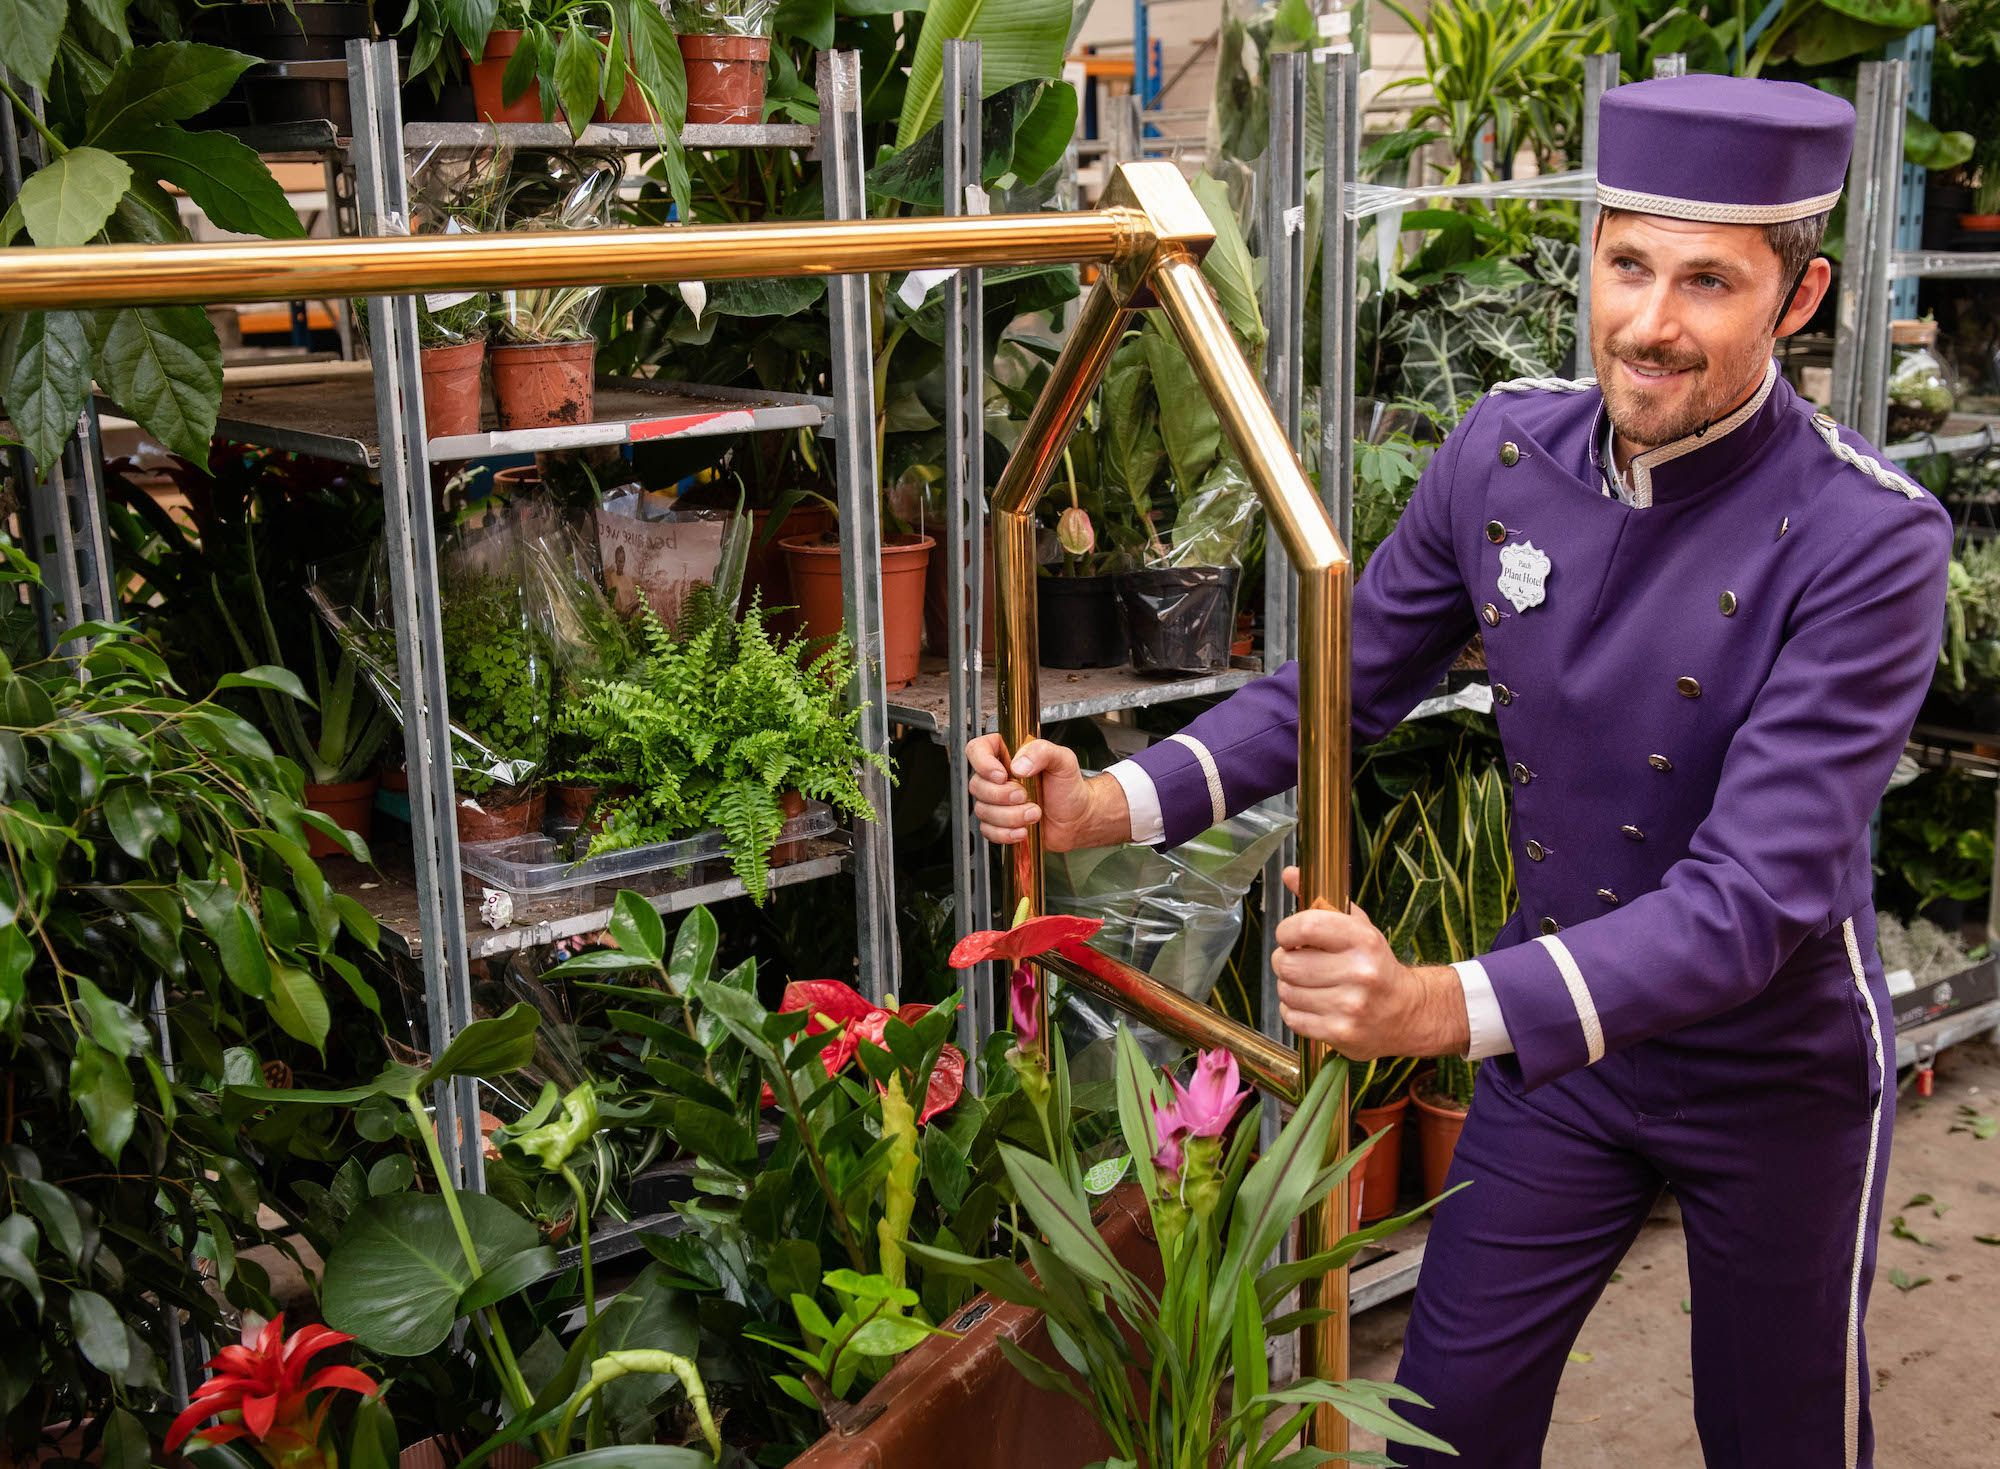 The world's first hotel for houseplants has just opened in London